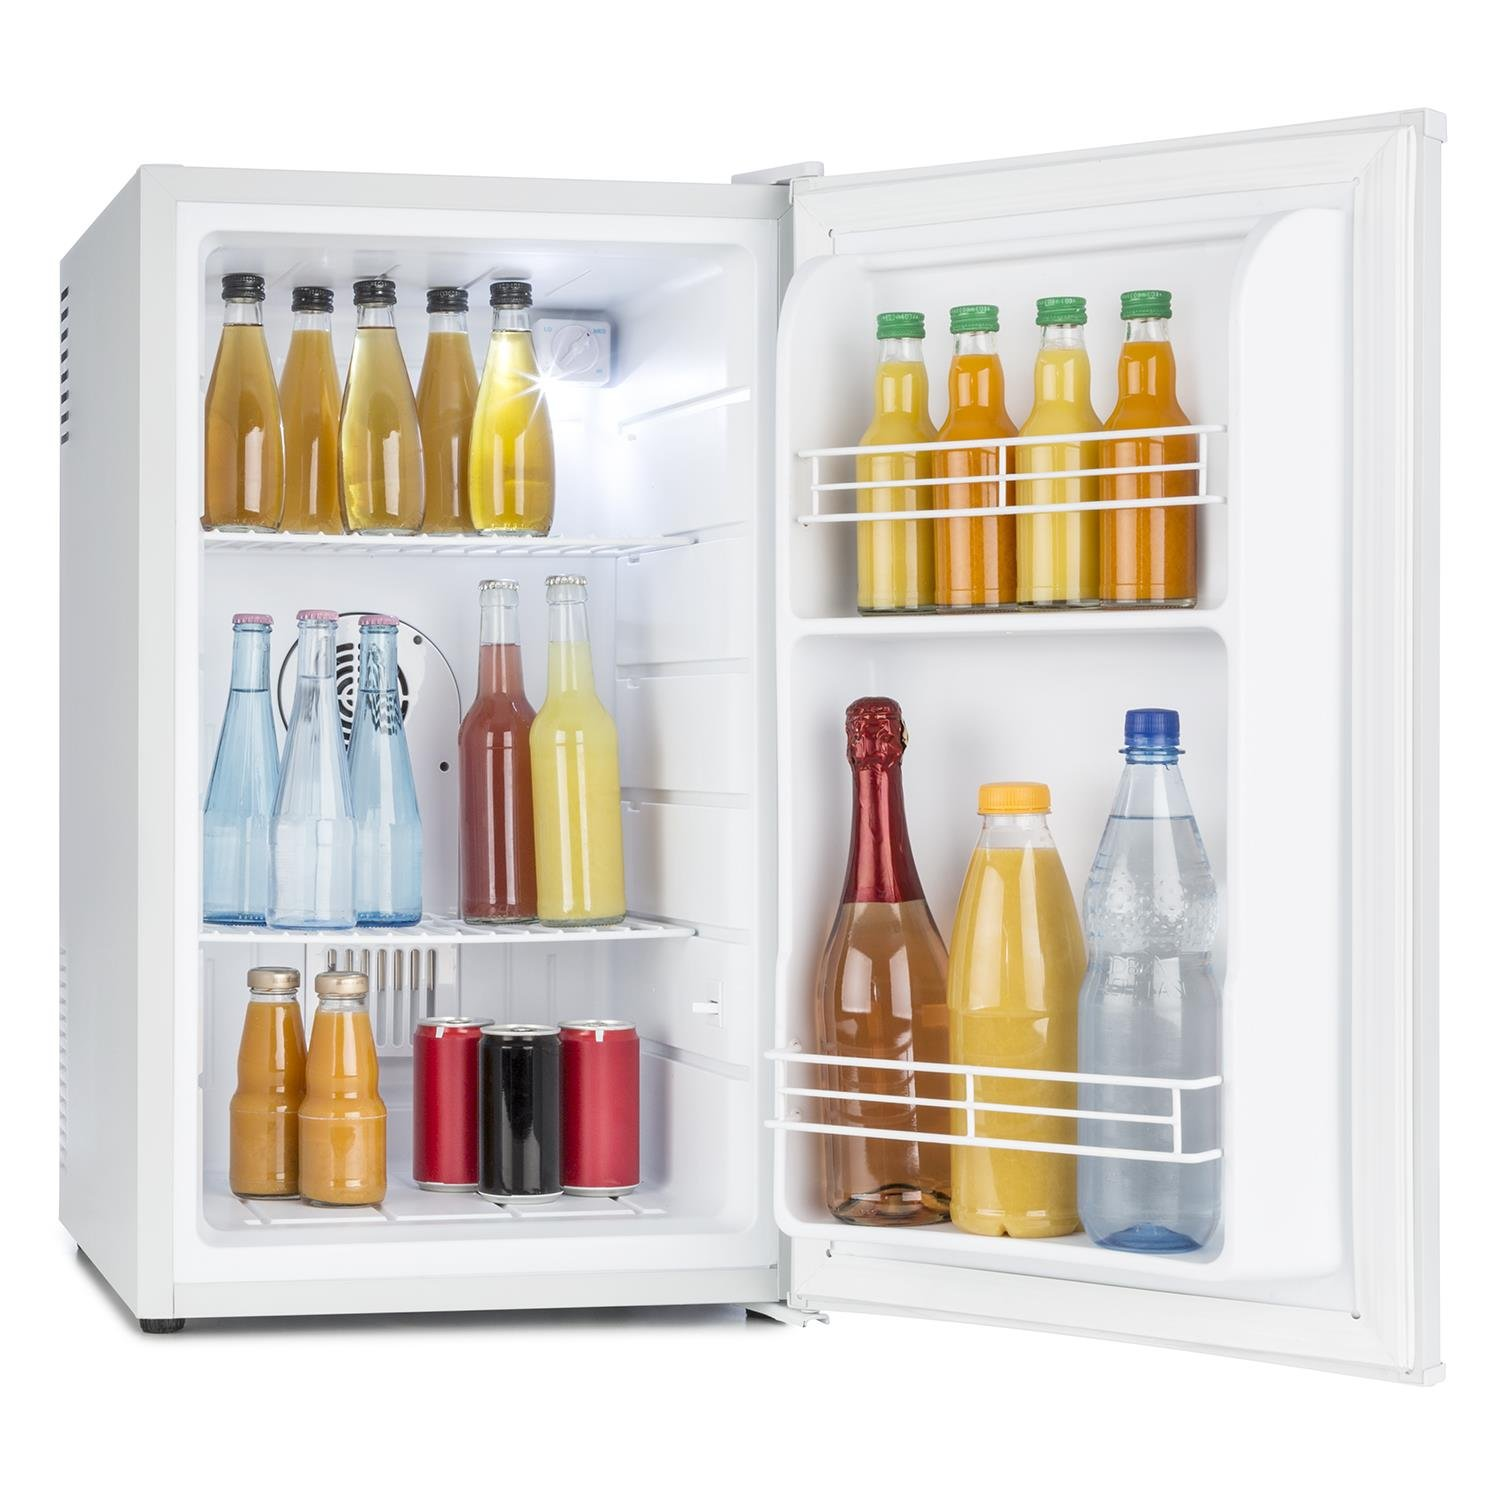 Klarstein MKS-6 Mini Bar Mini Fridge Refrigerator A 66L Quiet 30dB 43x72.5x51.5cm 2 Shelves Side Compartments 3 Step Temperature Regulator Matt White Housing White [Energy Class A]